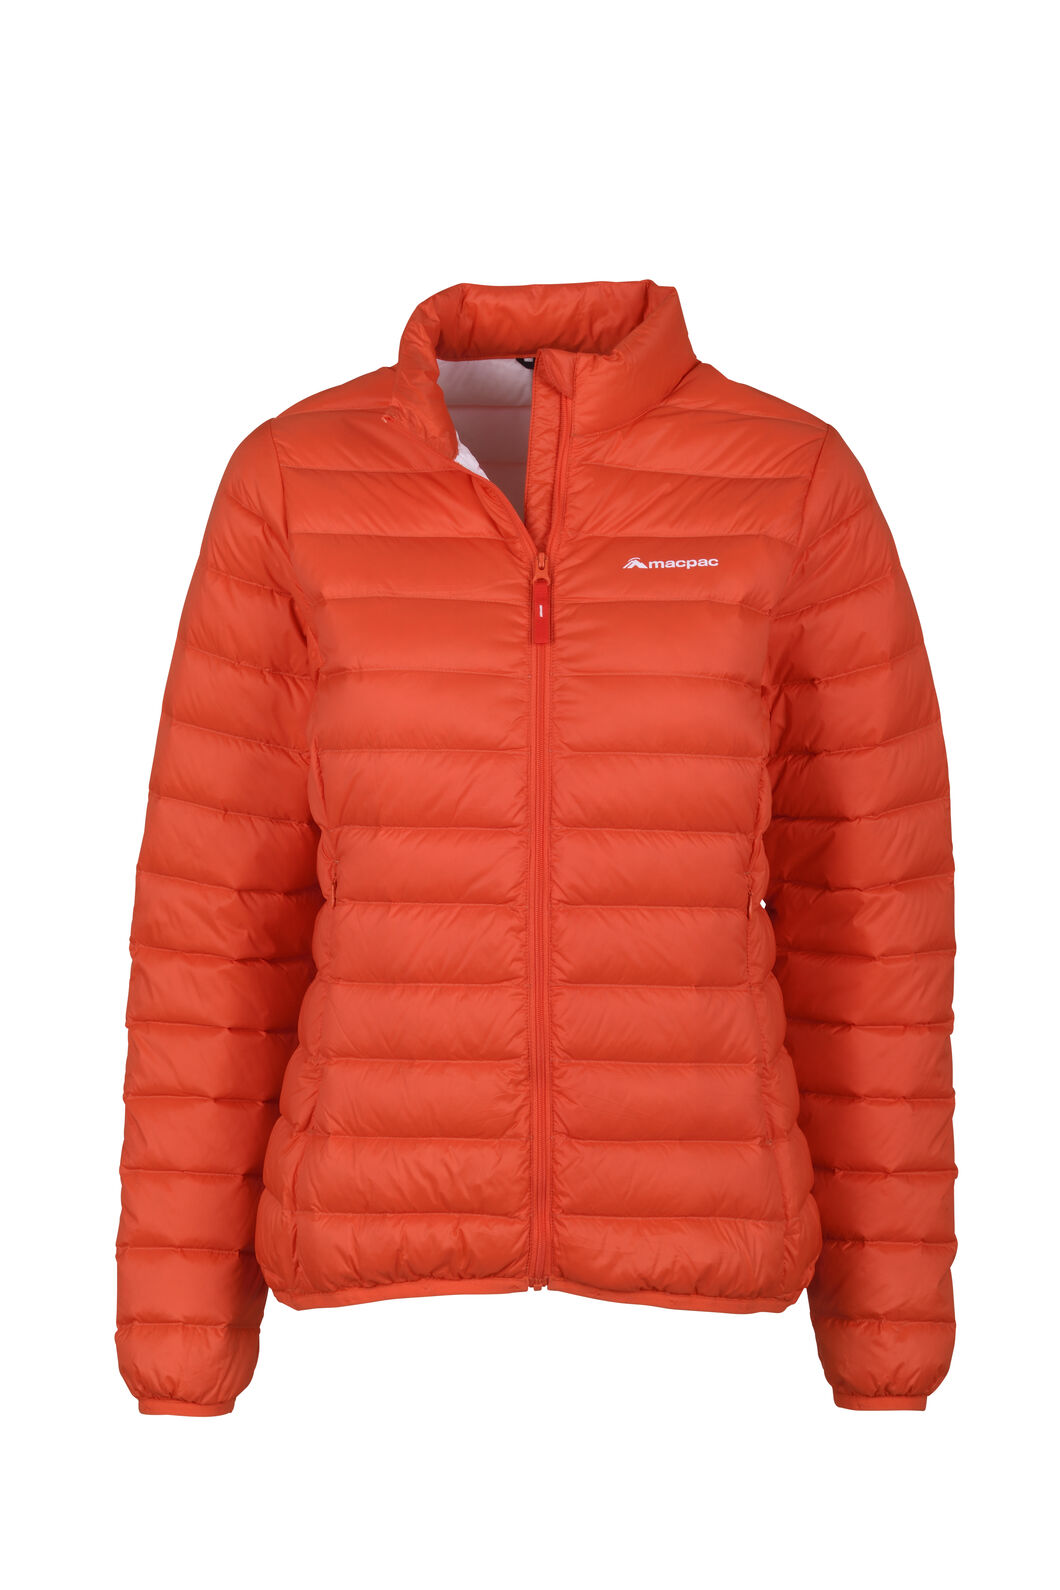 Macpac Uber Light Down Jacket - Women's, Mandarin Red, hi-res